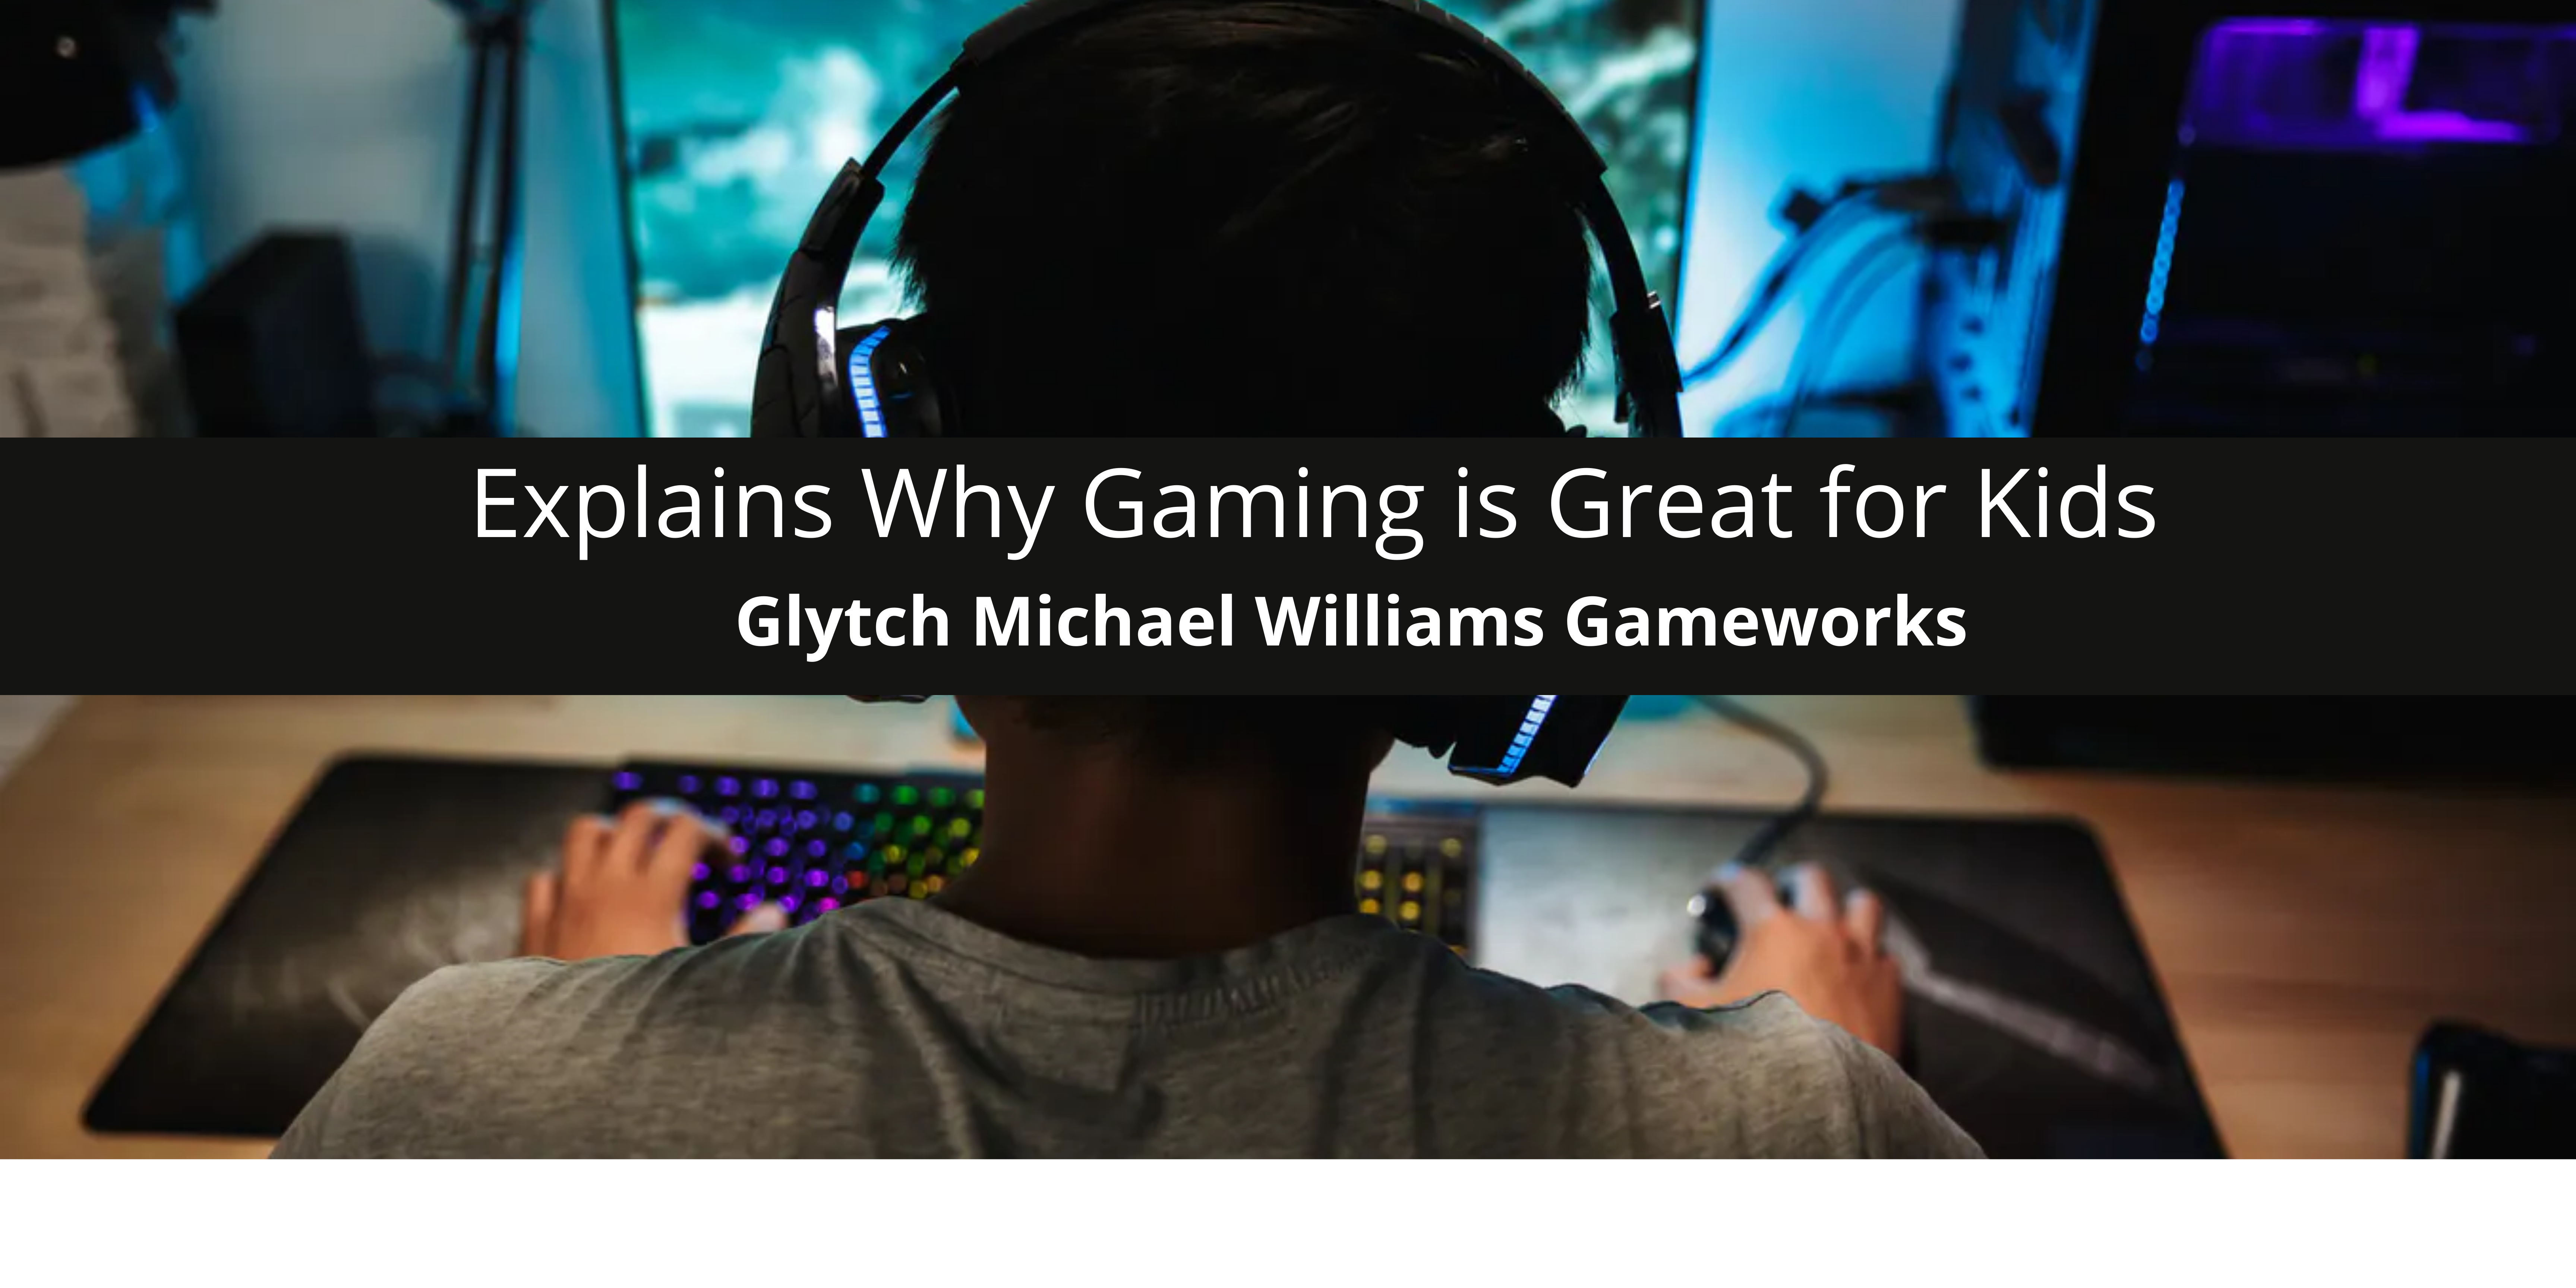 Glytch Michael Williams Gameworks Explains Why Gaming is Great for Kids